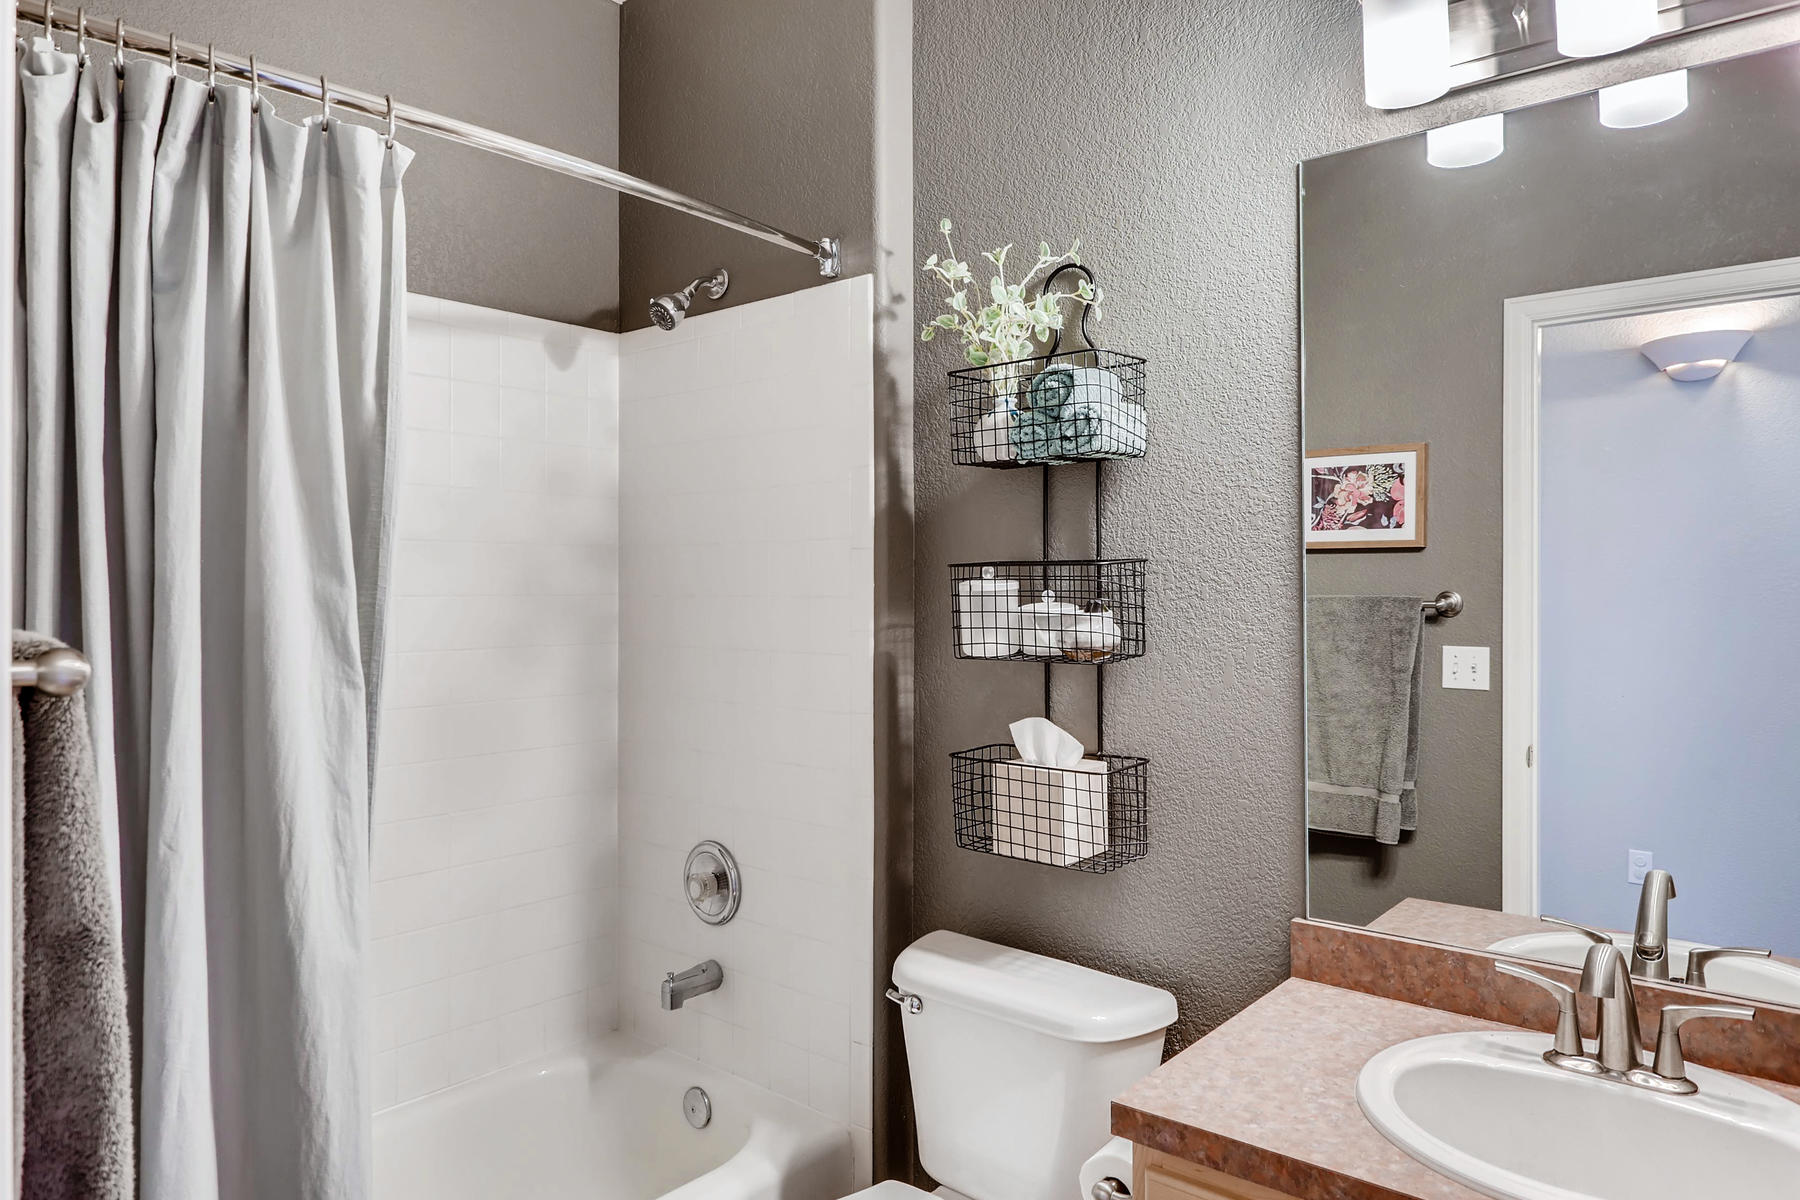 2142 S Fulton Cir 204 Denver-018-17-Bathroom-MLS_Size.jpg